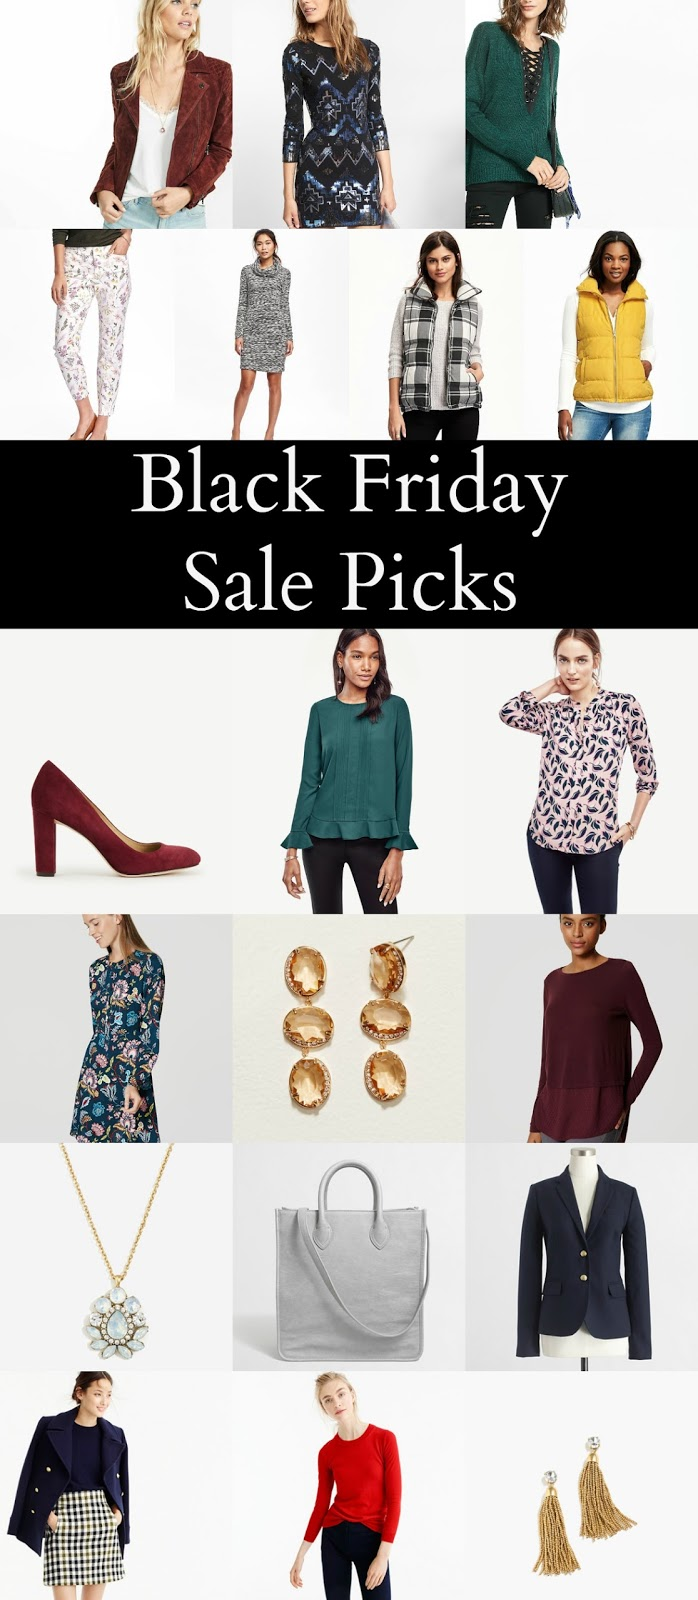 Black Friday Sale Picks 2016